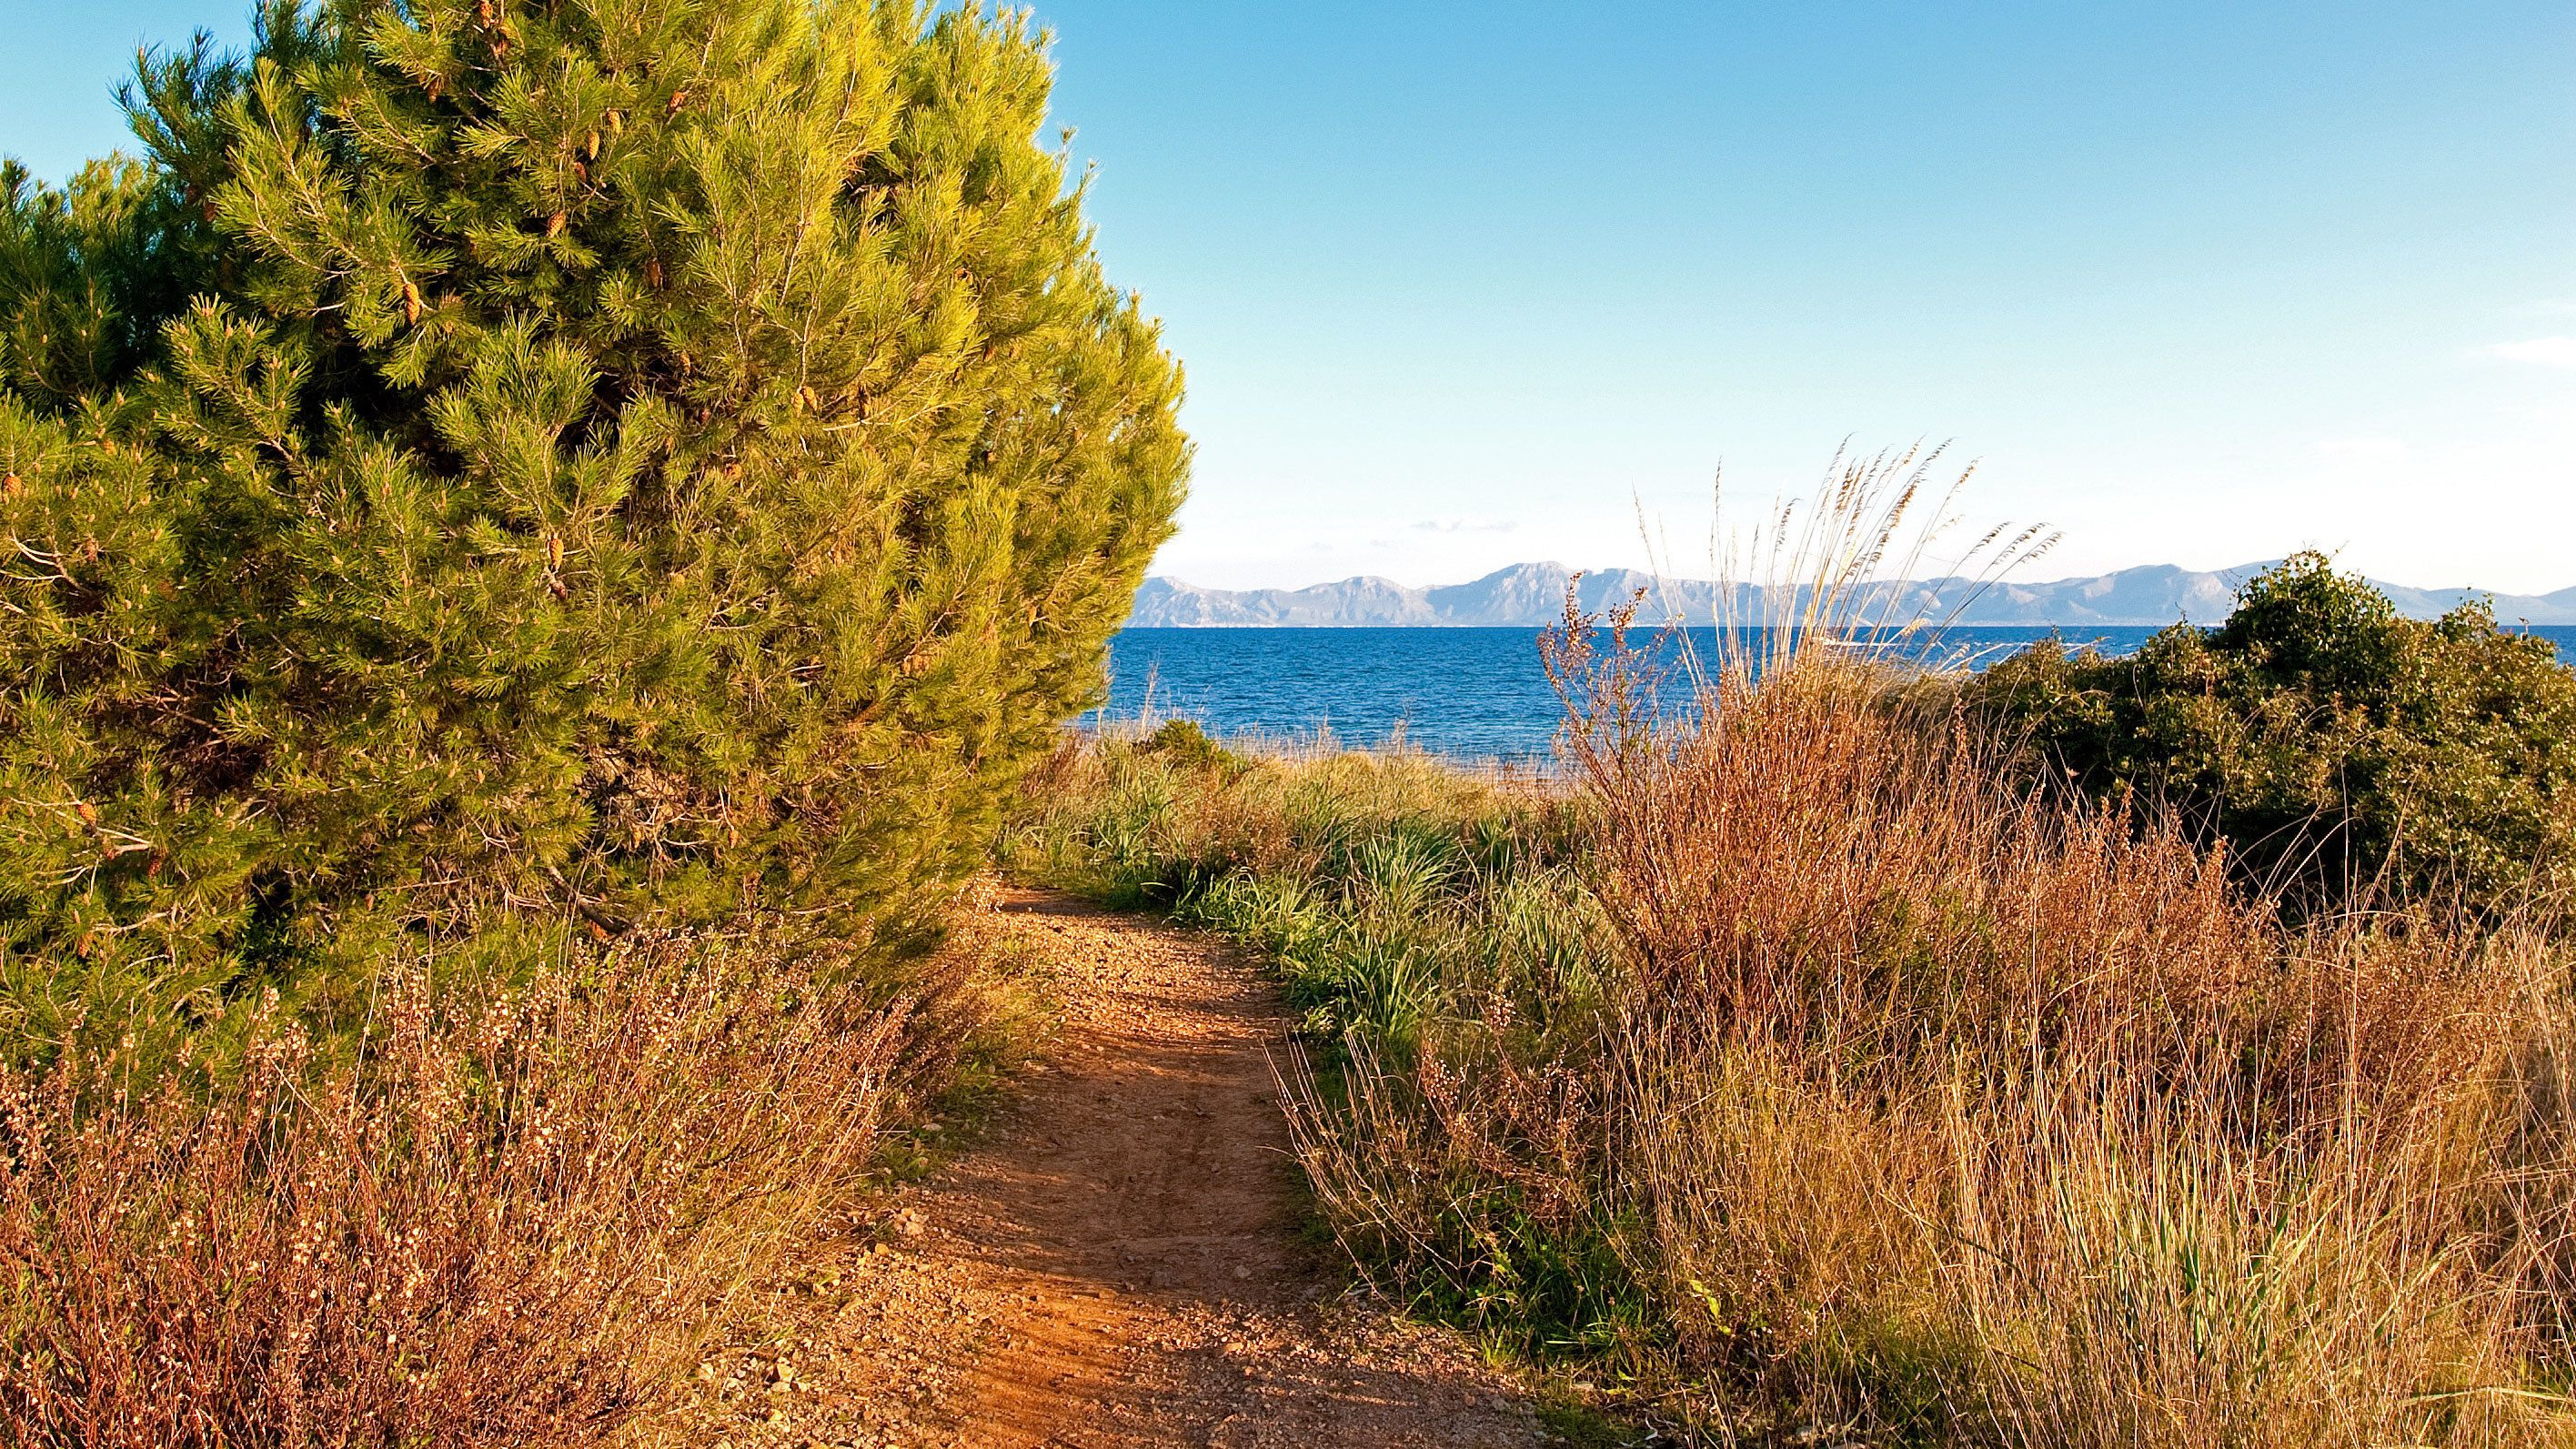 Dirt path leading to a body of water in Mallorca